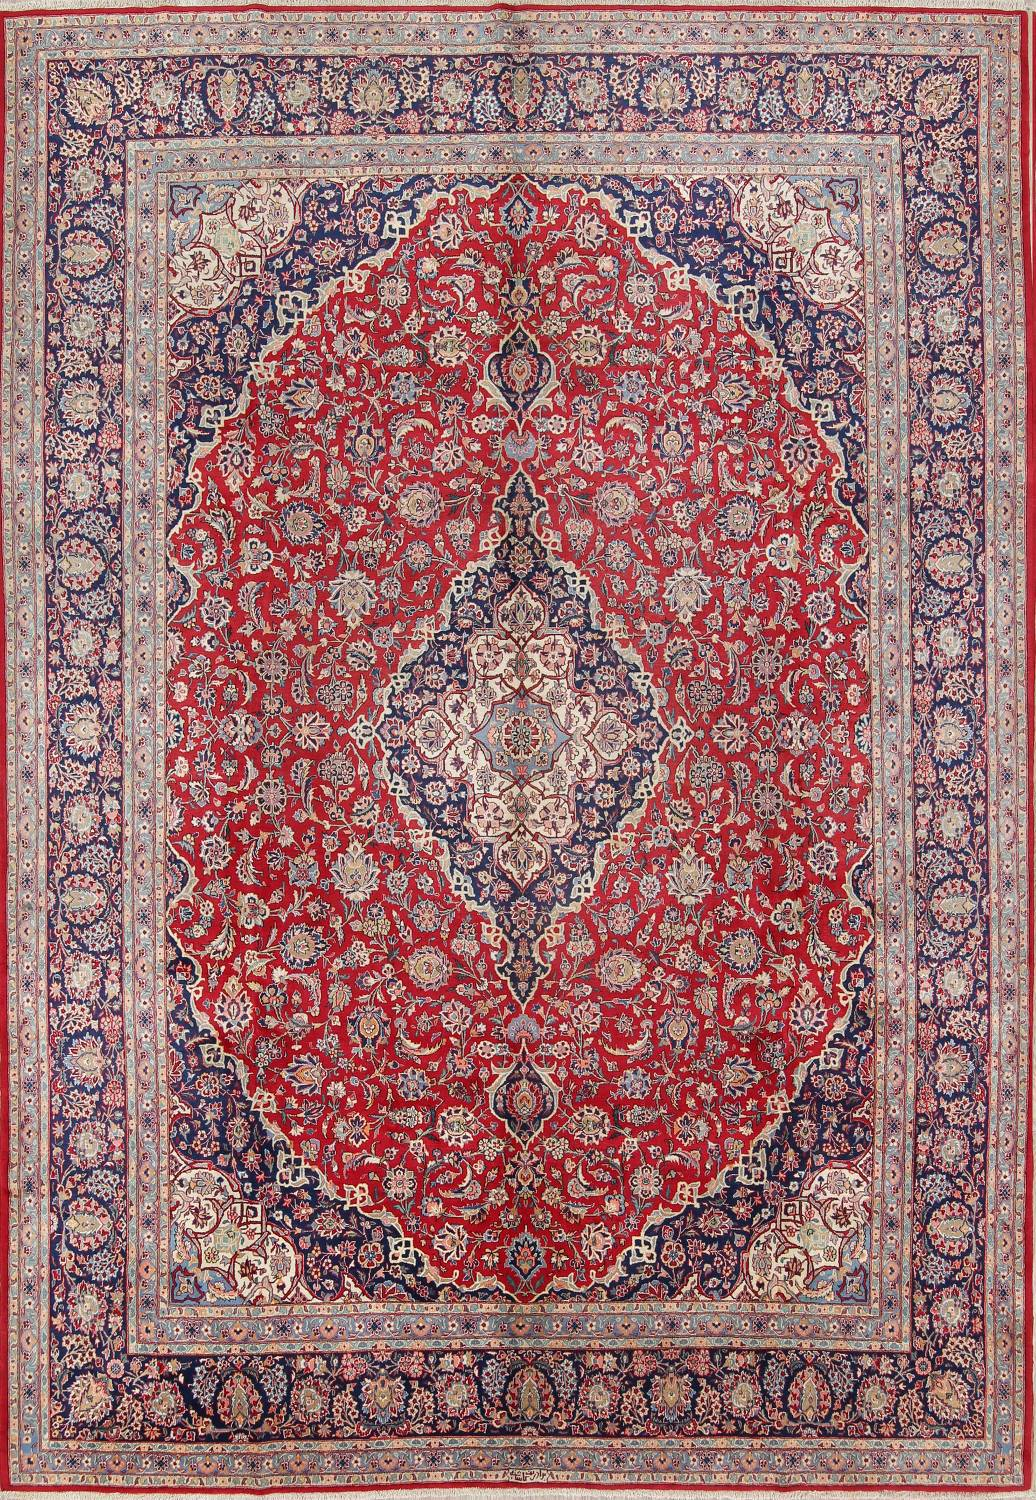 10x14 Kashan Signed Persian Area Rug